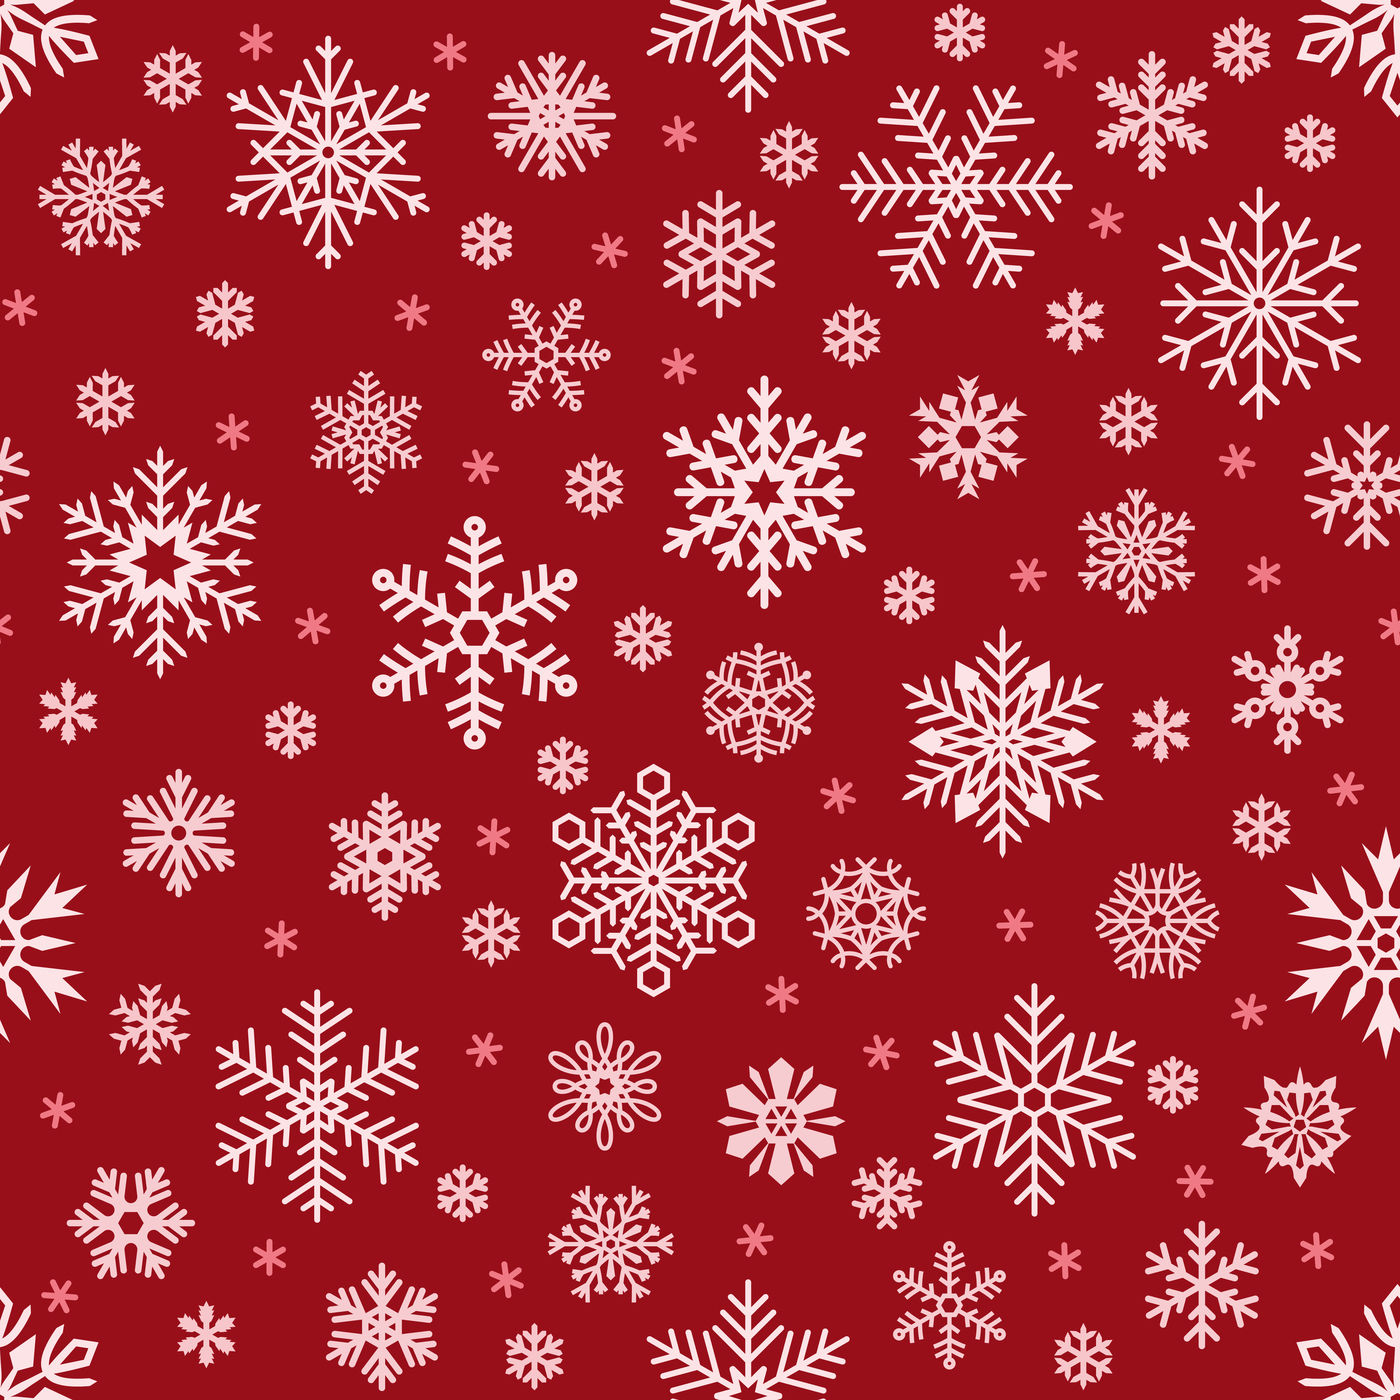 Snowflakes Pattern Christmas Falling Snowflake On Red Backdrop